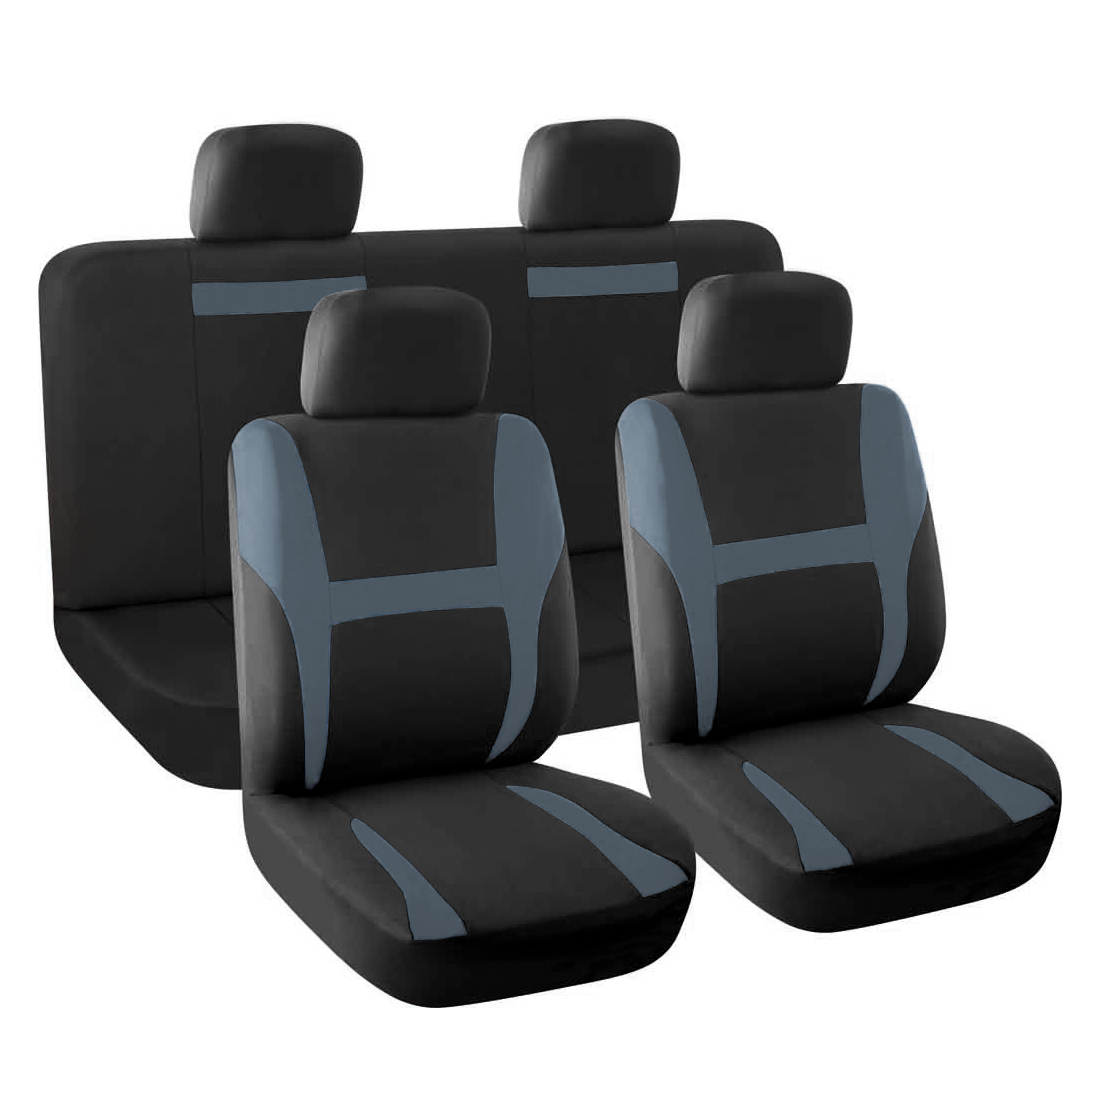 New Car Seat Covers Full Set Gray Black for Auto SUV w/Head Rests